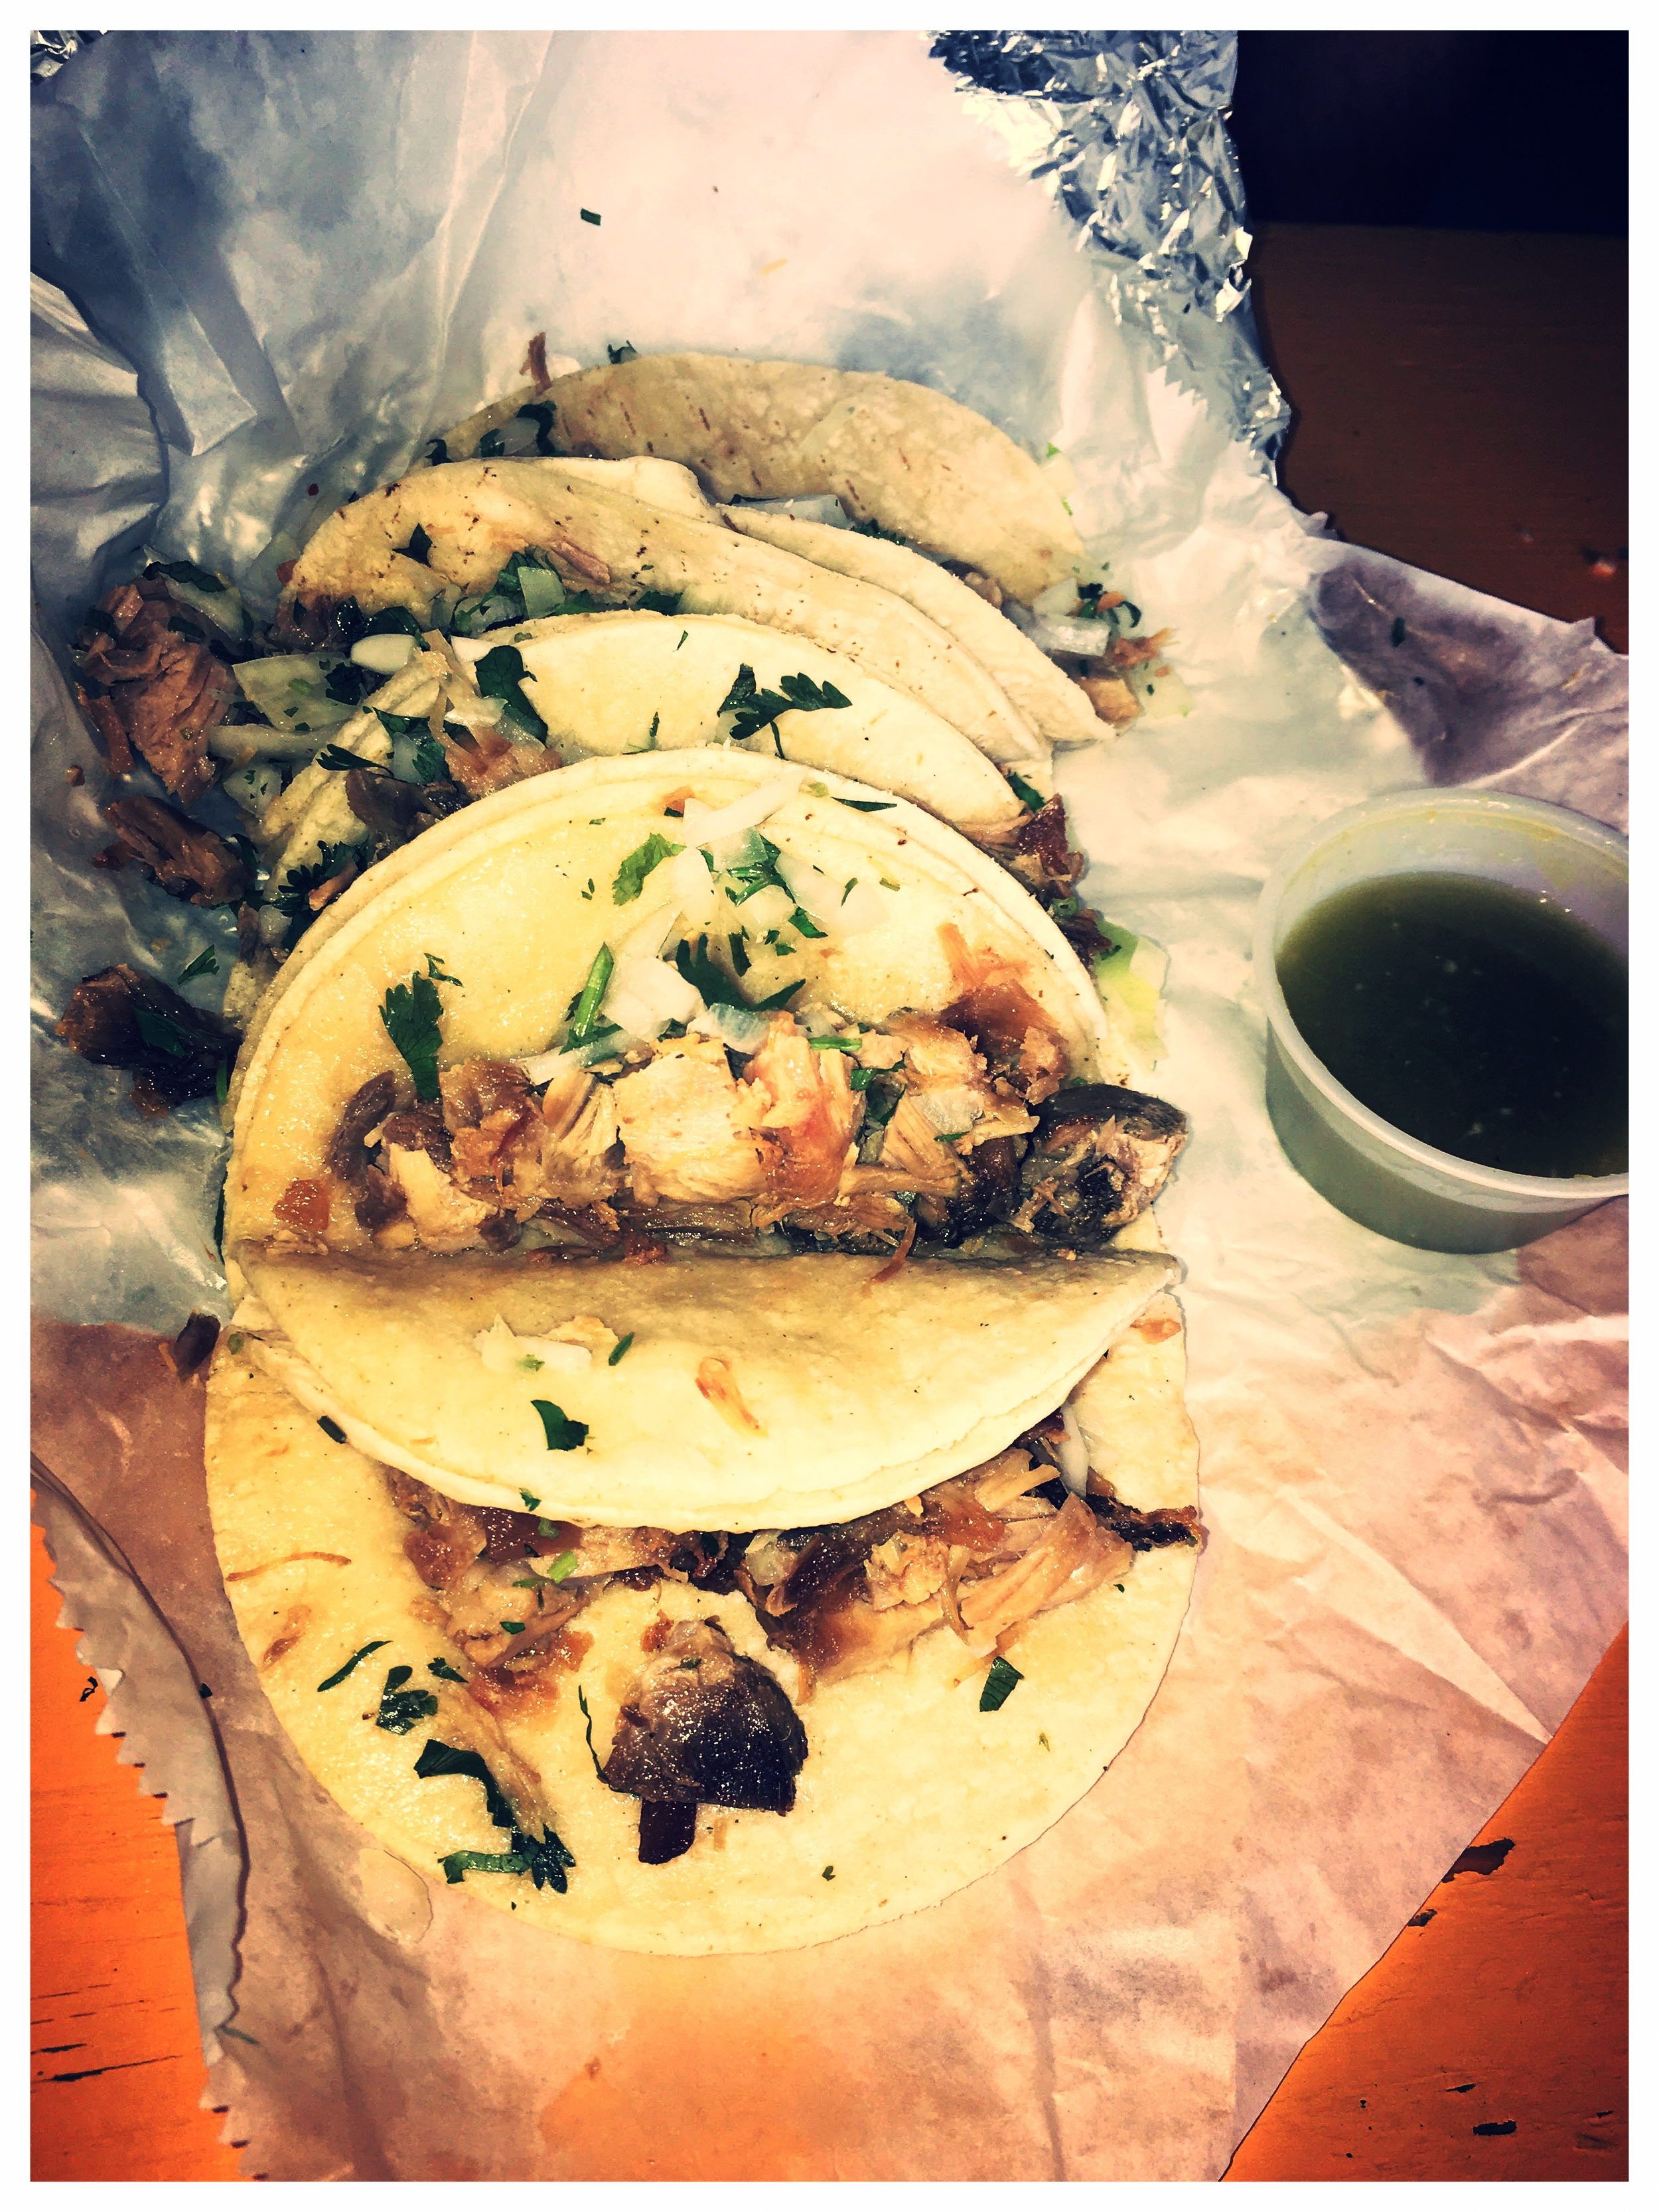 - Our Carnitas tacos... Yum. Yum.Tacos/Burritos/Tortas and Quesadillas are all available using 18 different meat options. See menu image below.